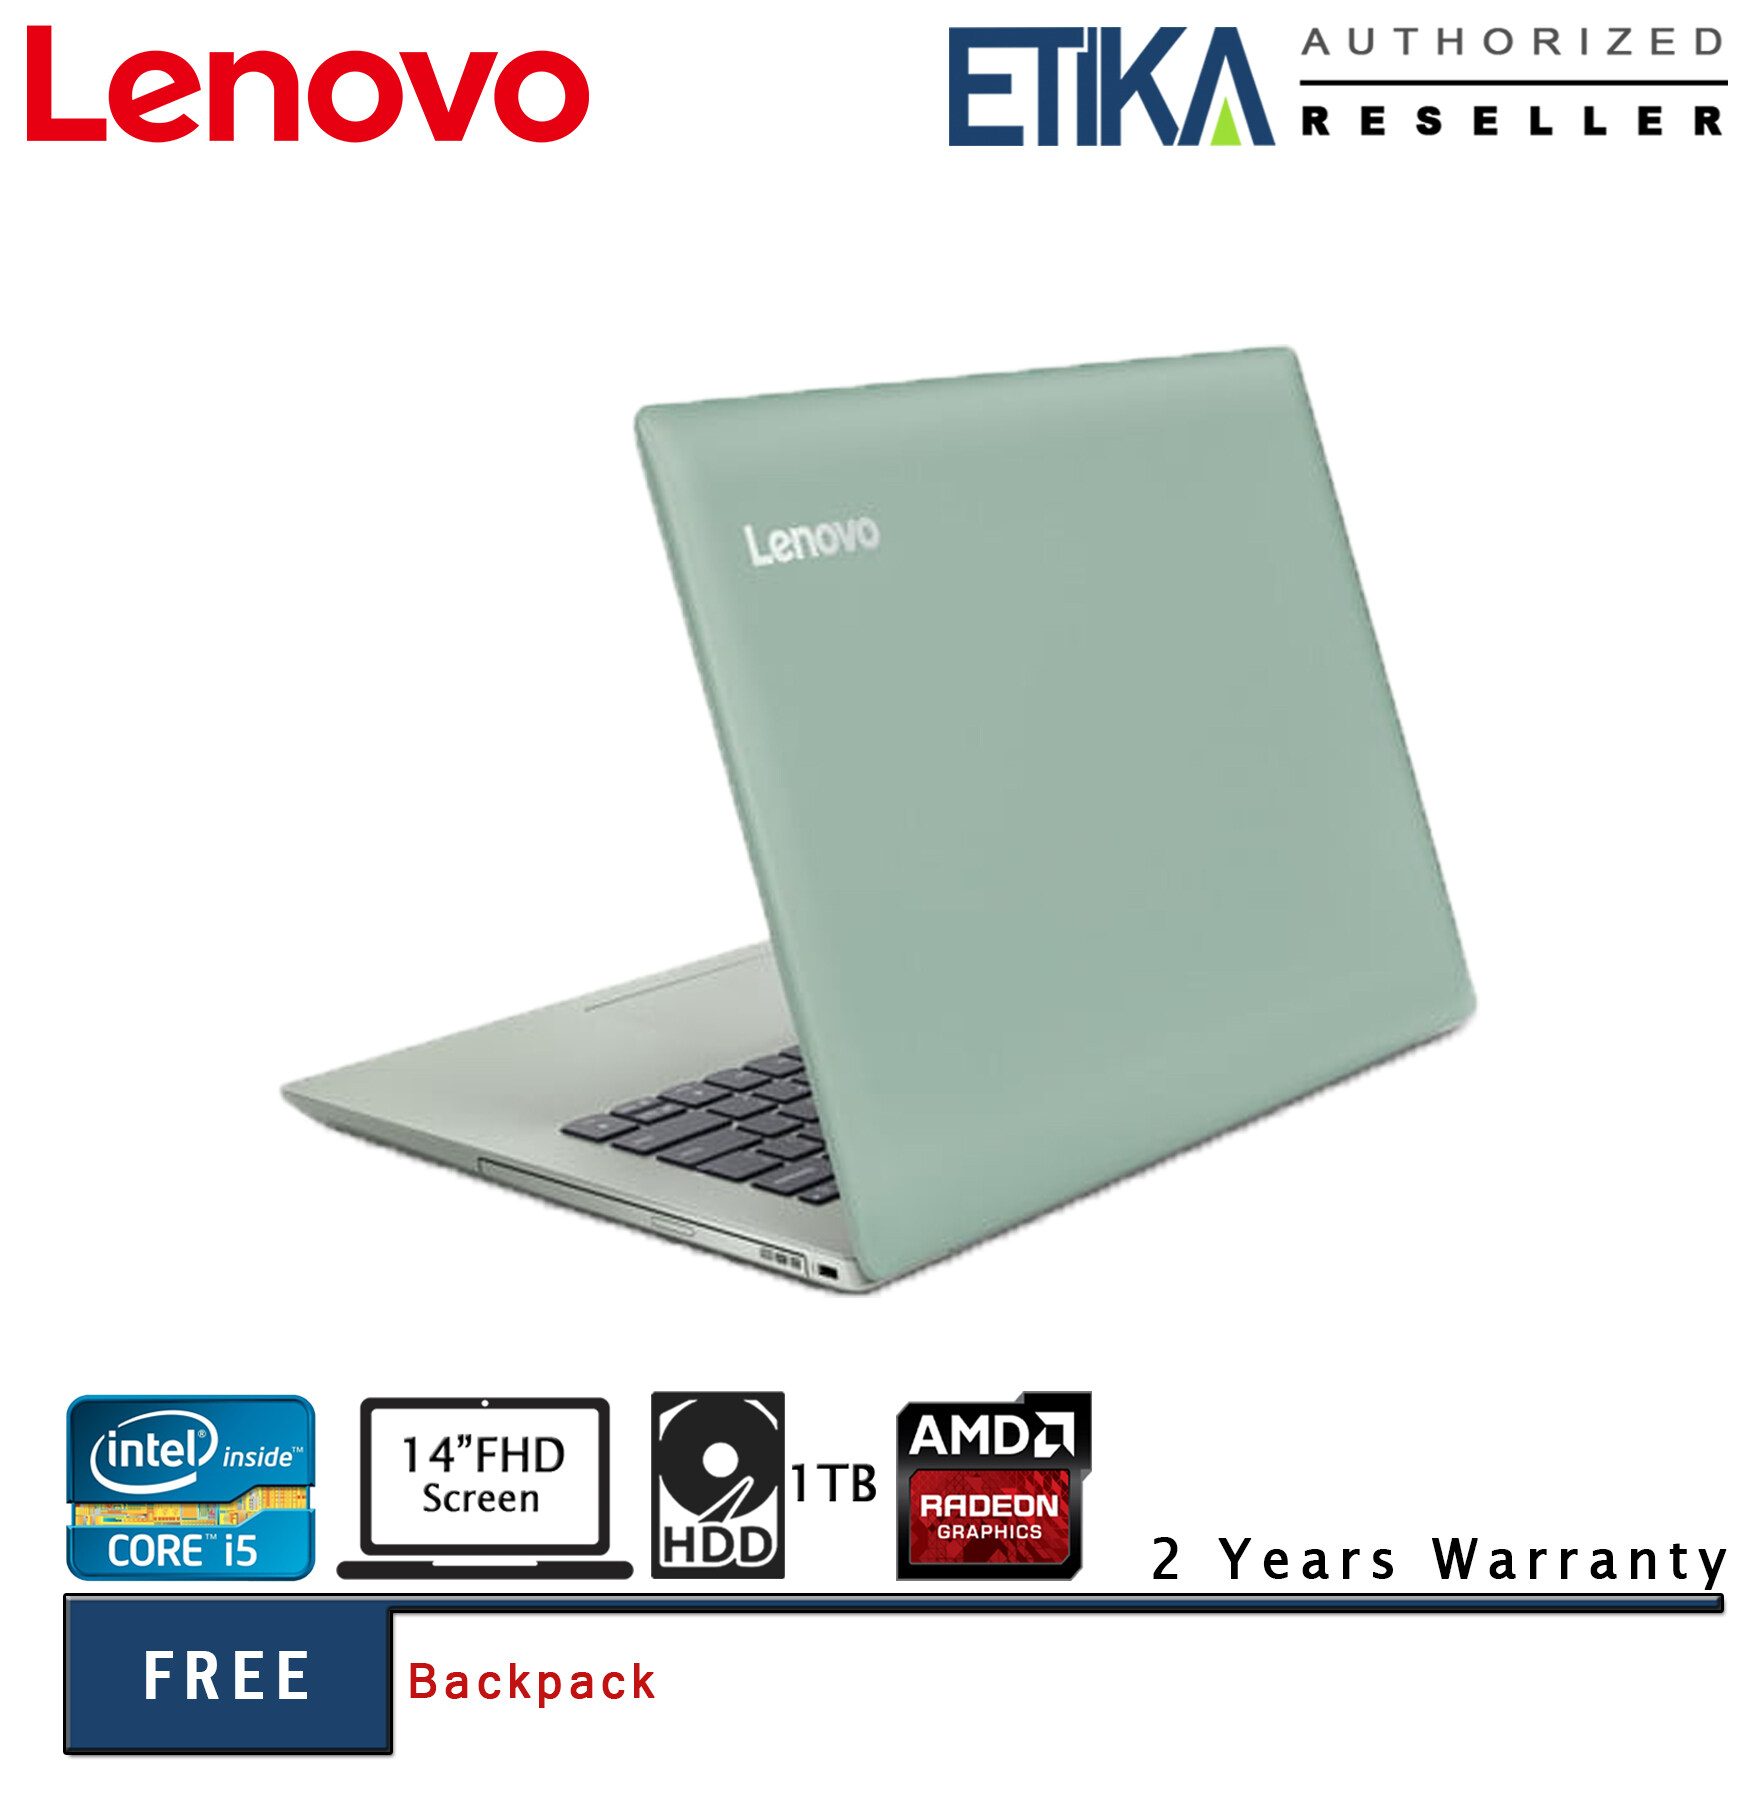 Lenovo 330-14IKBR 81G20034MJ Intel i5 14  FHD Laptop (Mint Green) - Free Backpack Malaysia